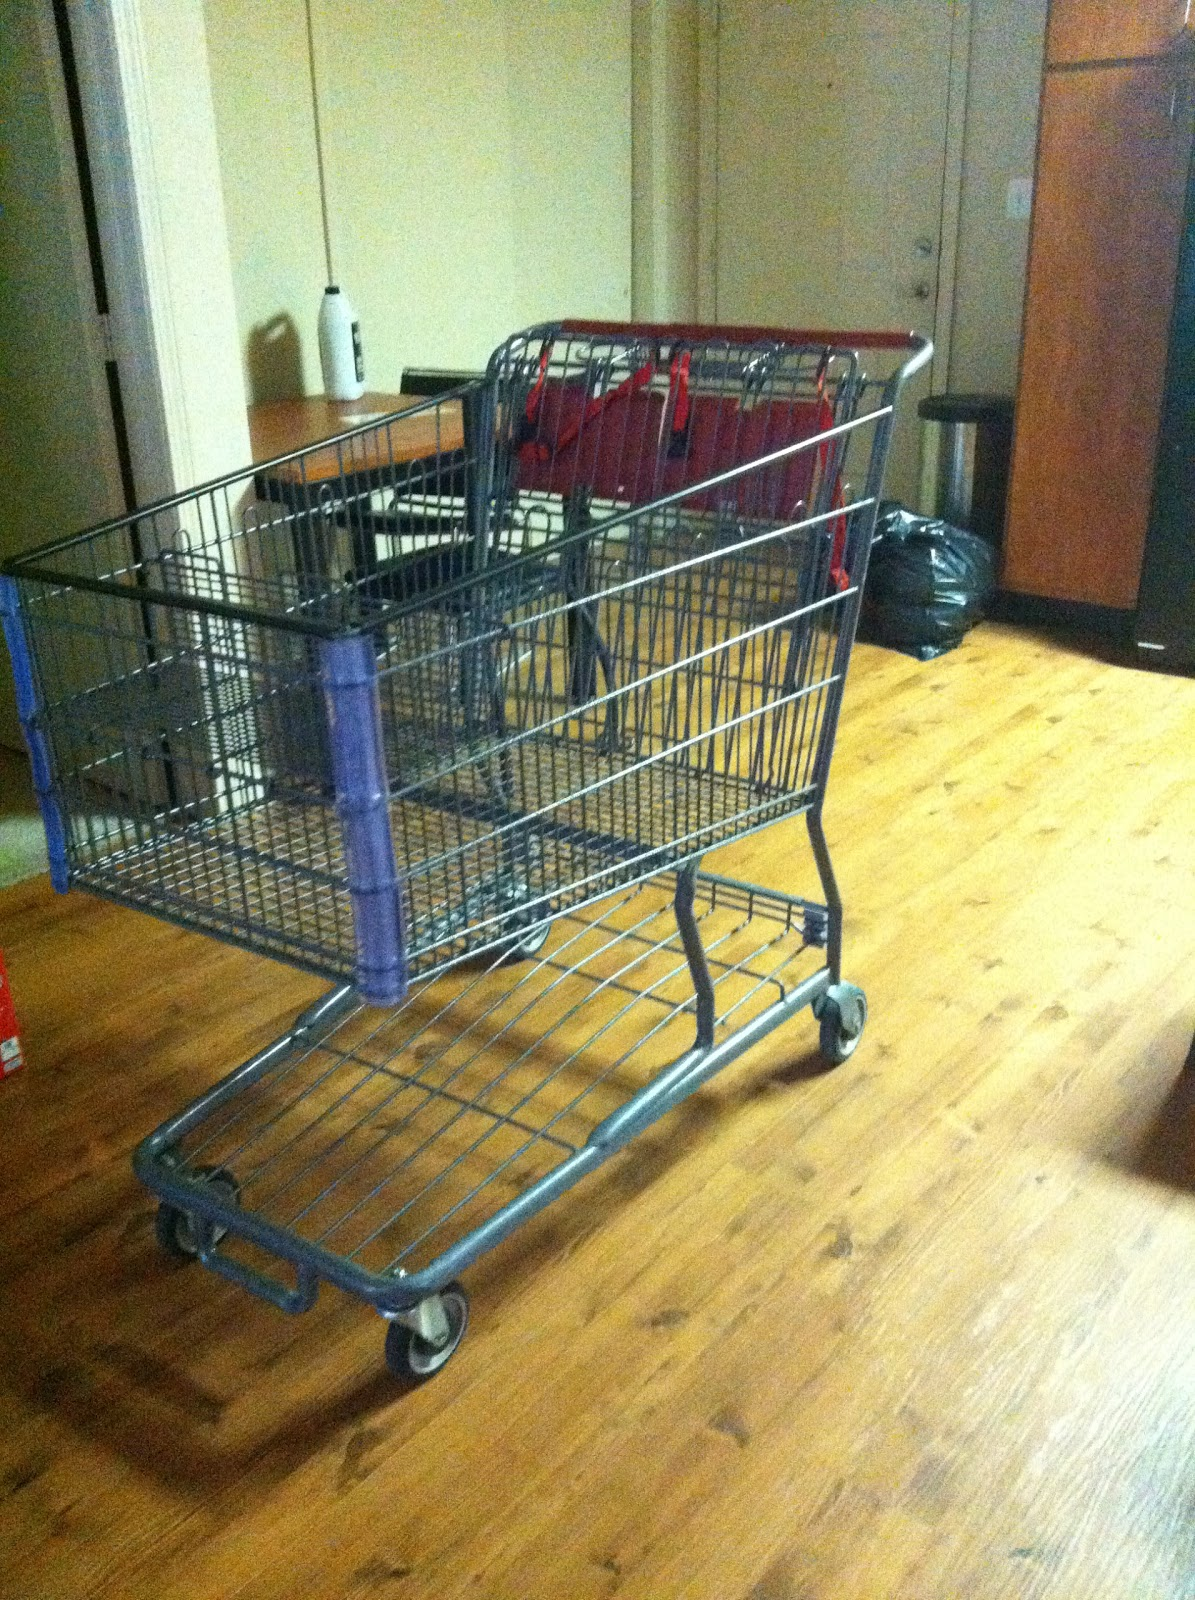 Today I Learned...: Shopping carts are incredibly efficient ...